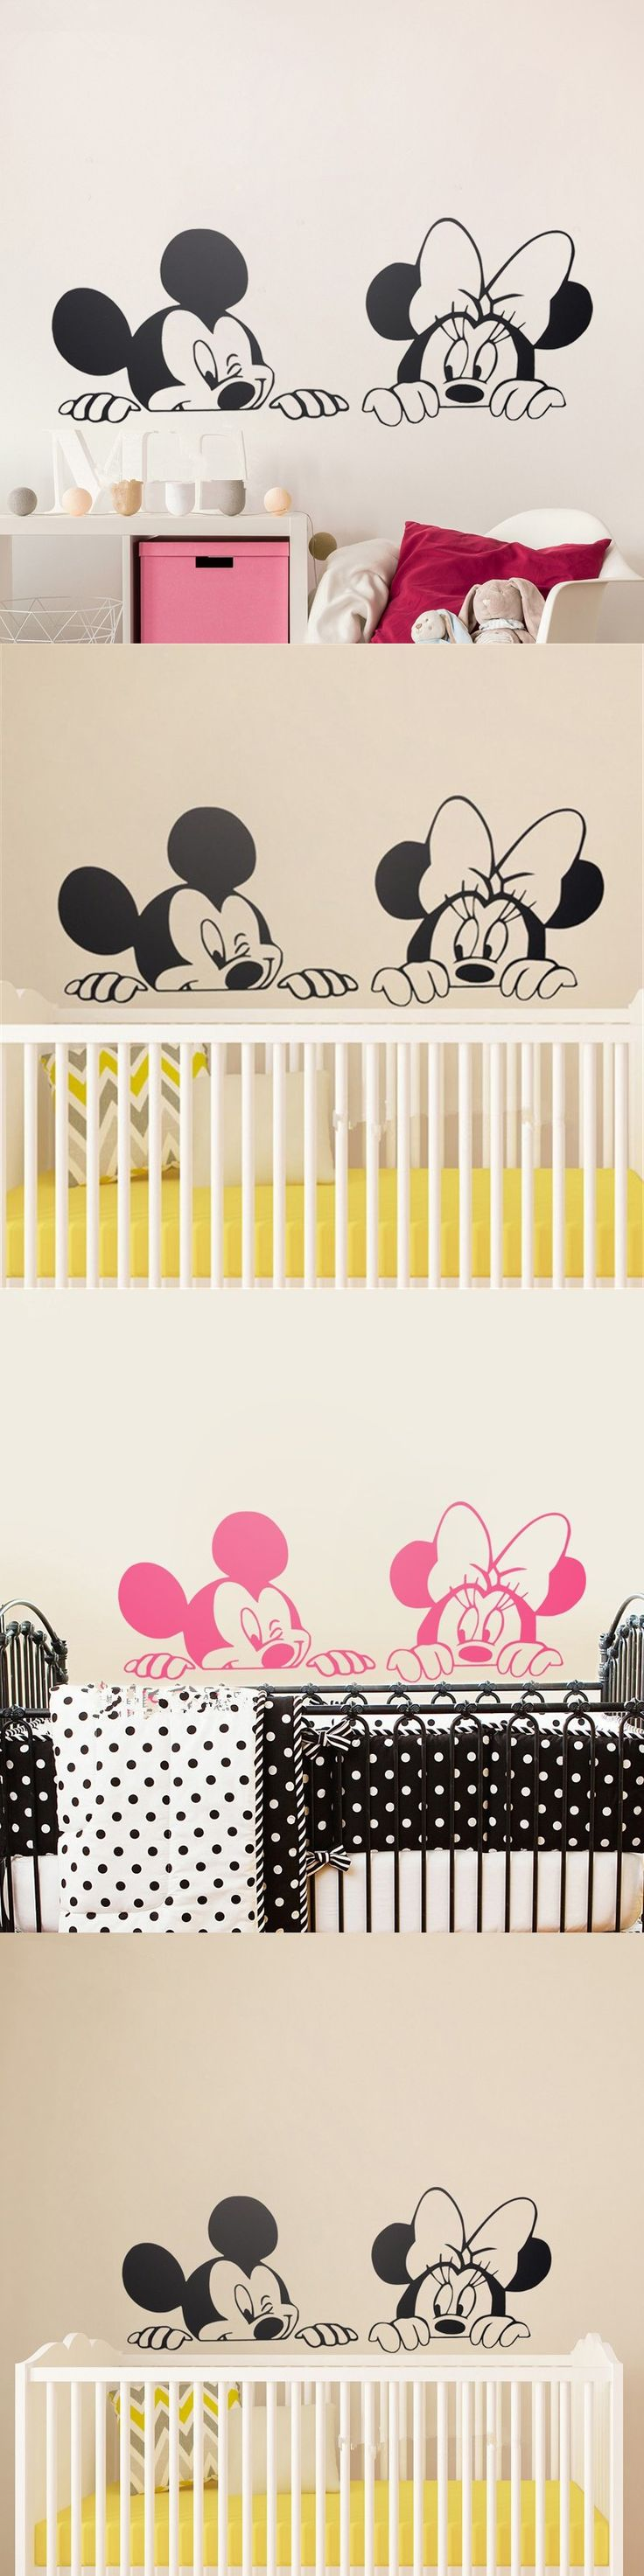 25 einzigartige minnie mouse ideen auf pinterest party. Black Bedroom Furniture Sets. Home Design Ideas